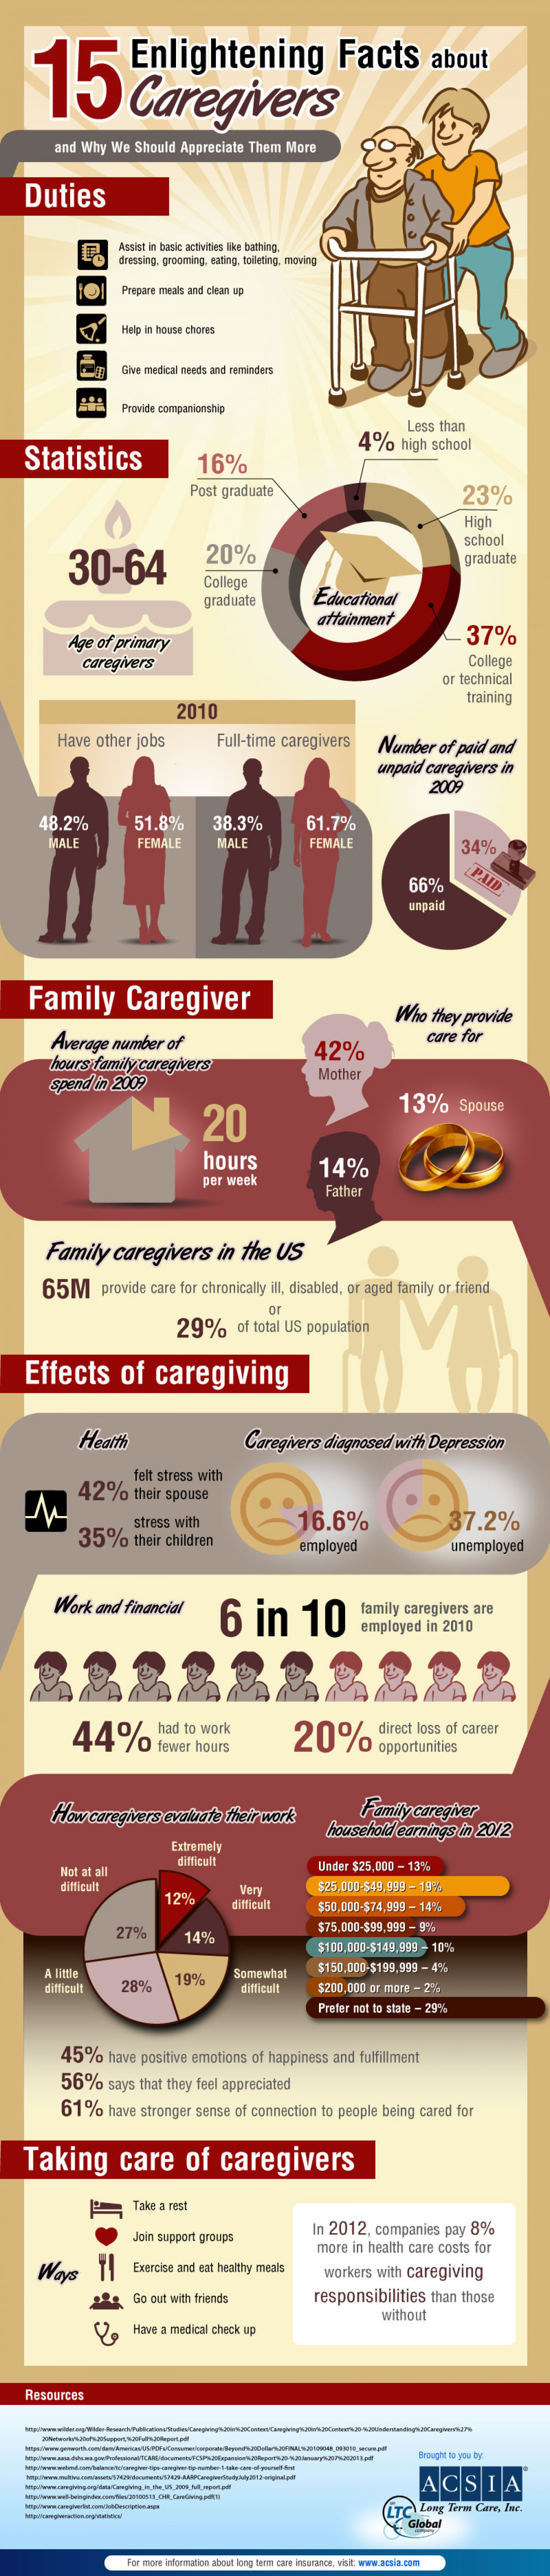 15 Facts You Didn't Know About Caregivers. Infographic